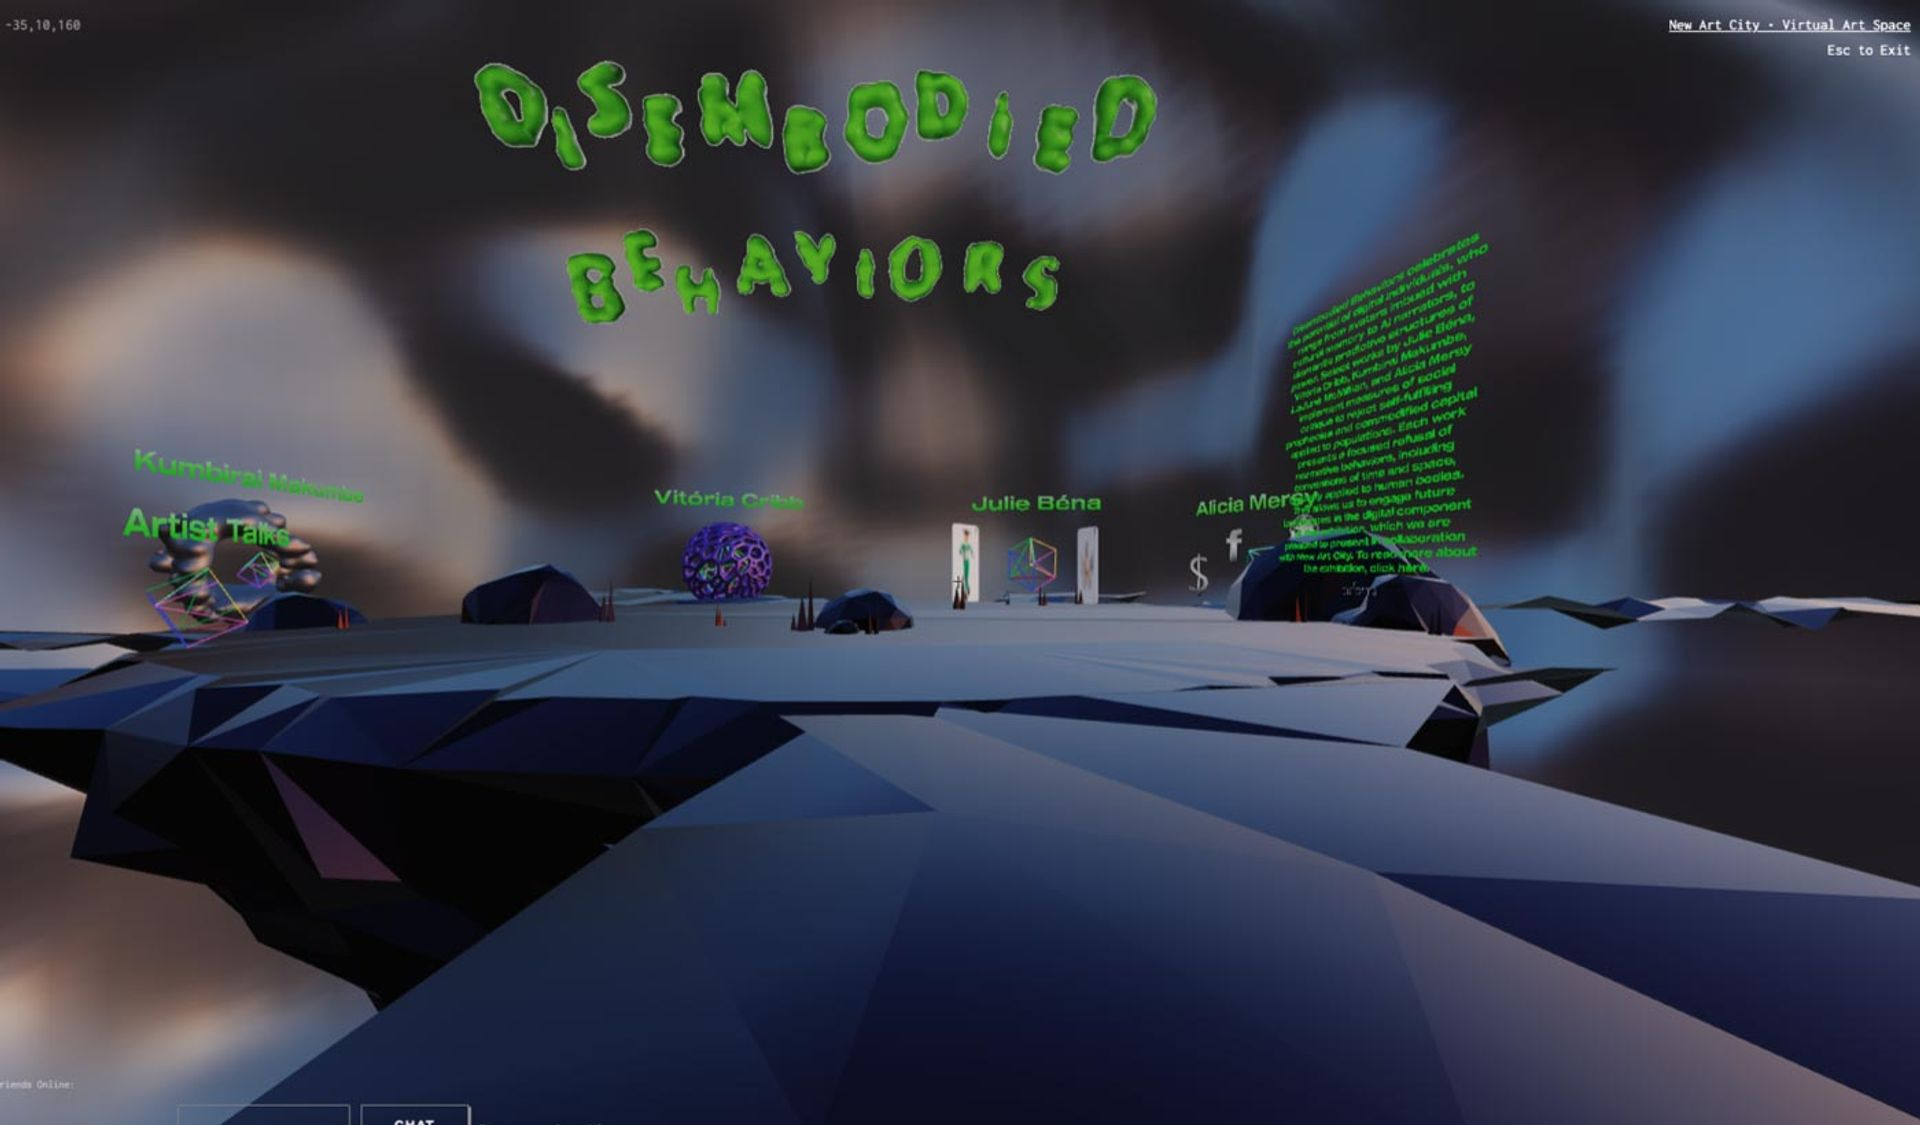 Disembodied Behaviors is a virtual exhibition presented on New Art City by bitforms gallery, curated by Zaiba Jabbar and Valerie Amend